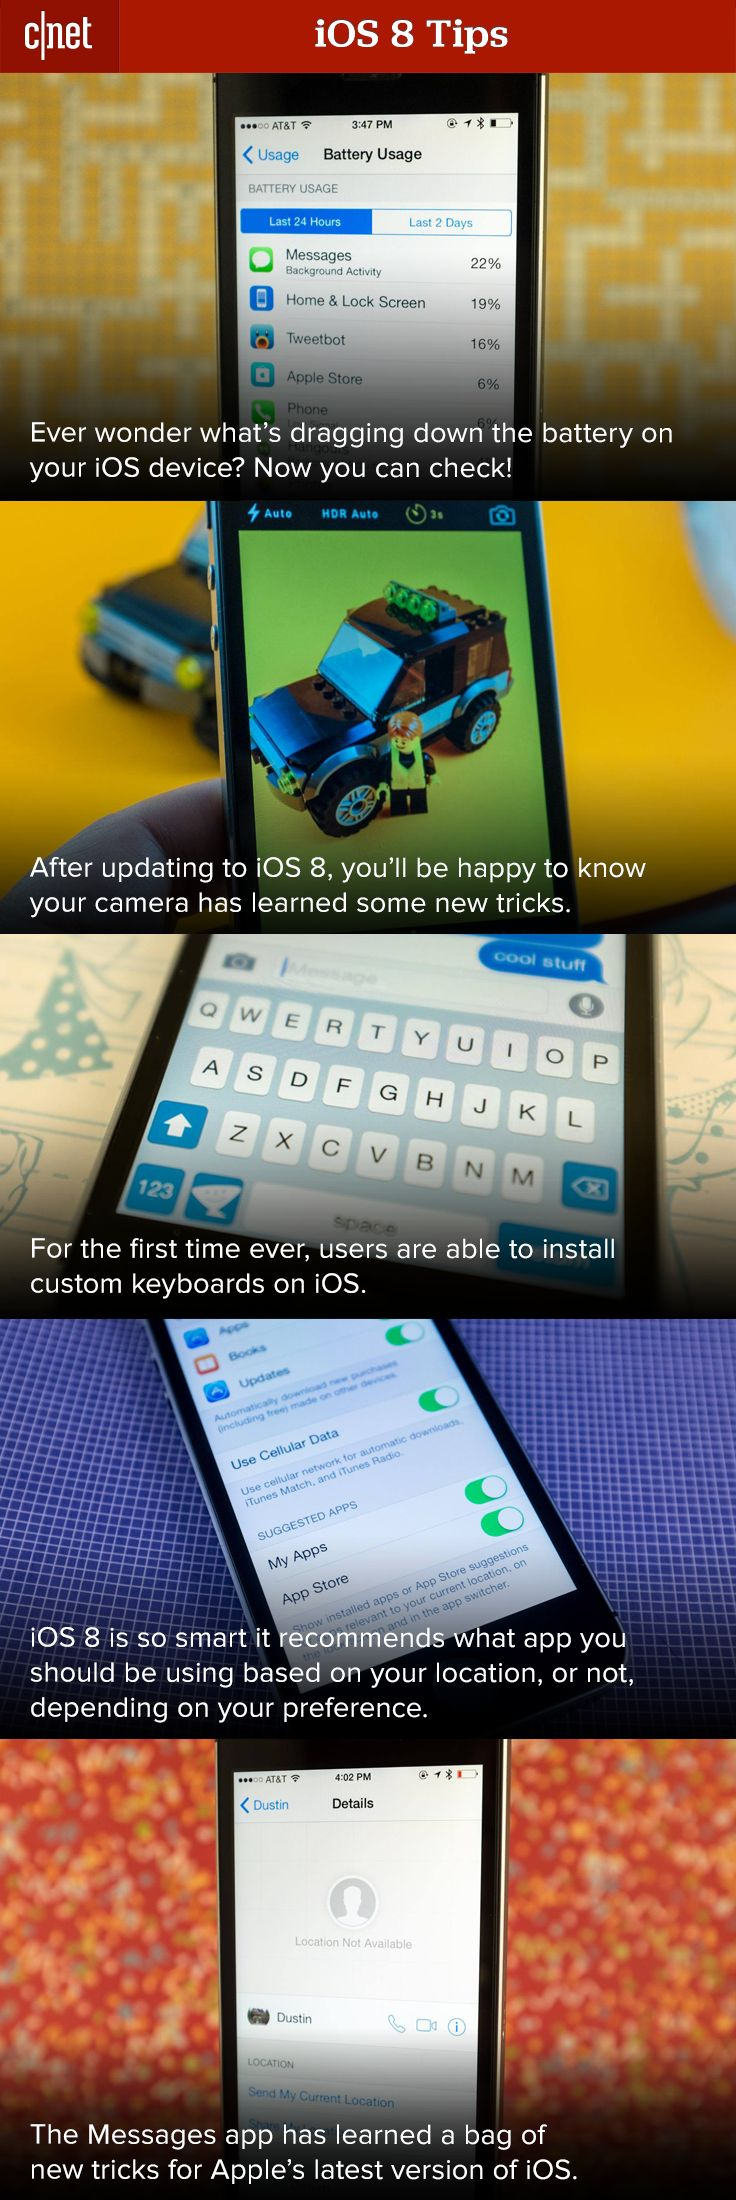 iOS 8 looks to be one of the biggest updates to Apple's mobile platform with new features galore. We've compiled a list of tips and tricks to help you navigate the newest iOS.